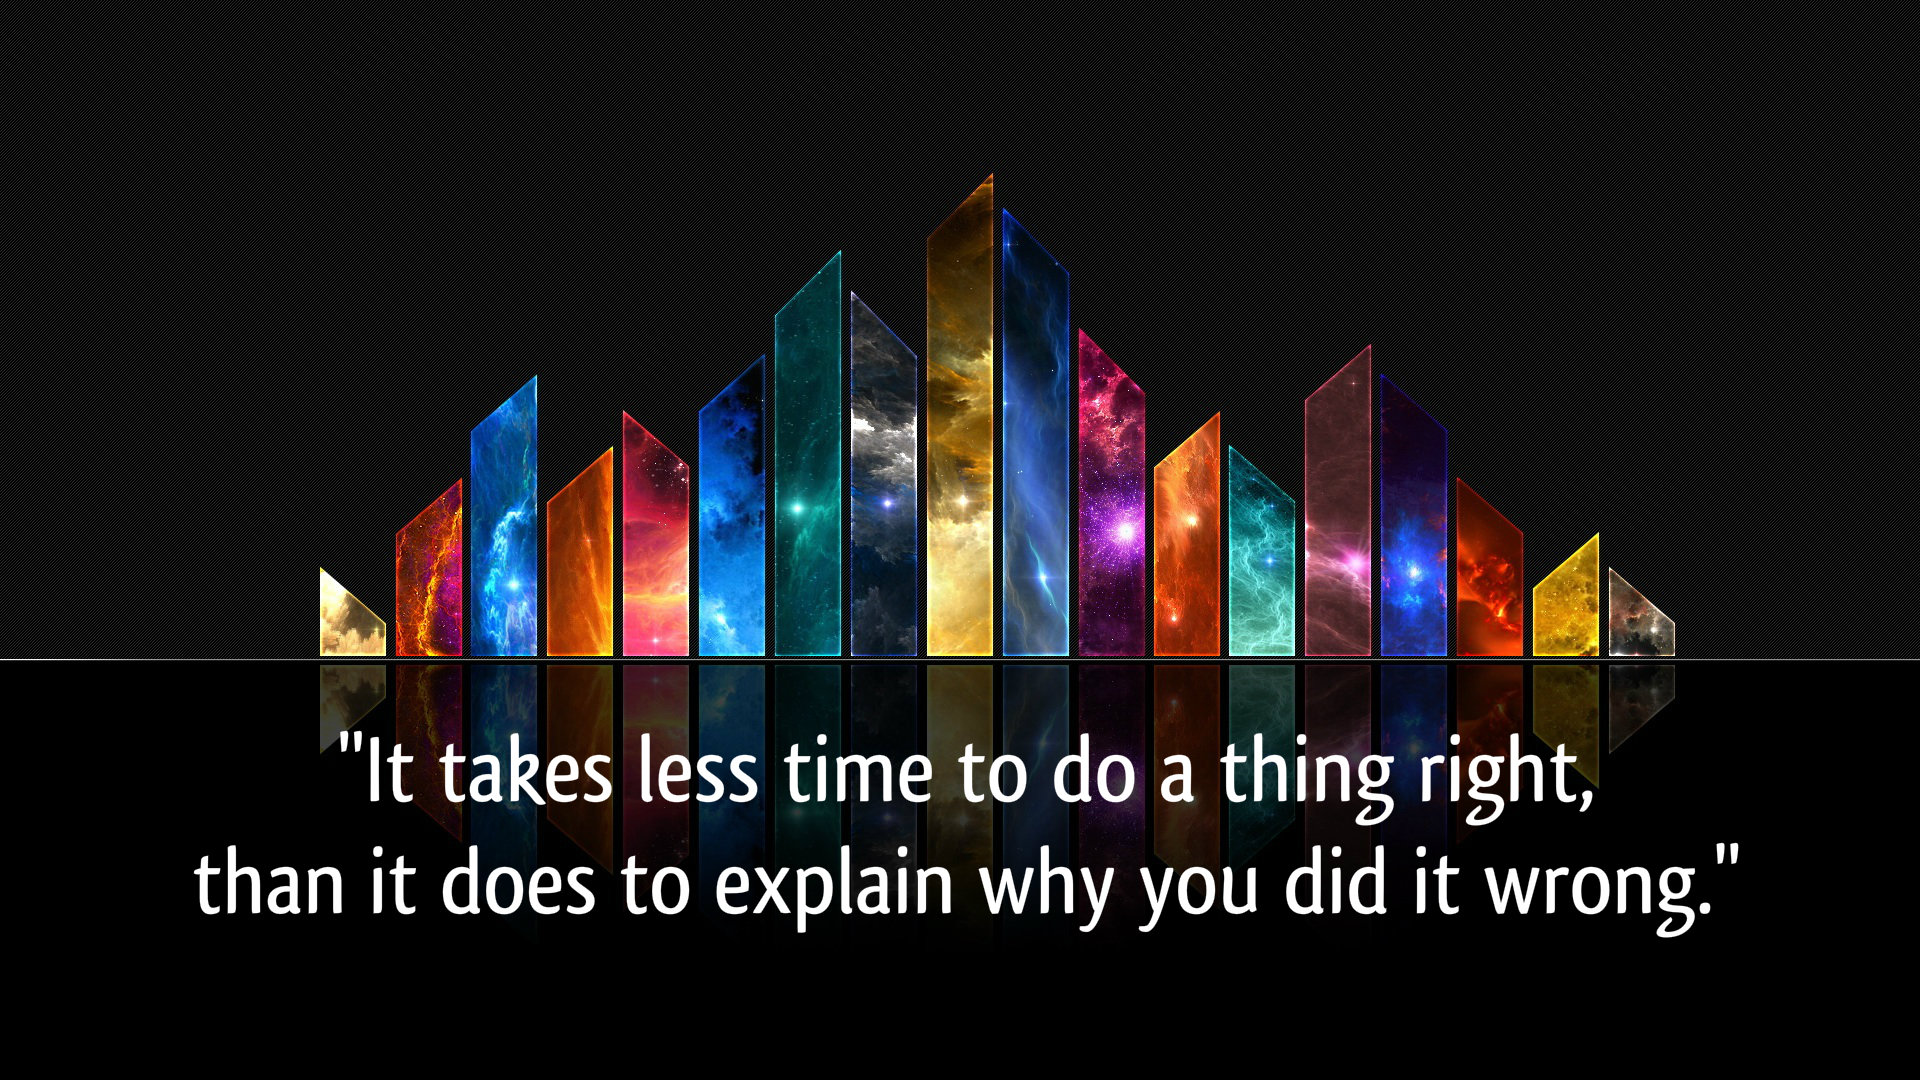 Quotes Wallpapers for the Month of May 1920x1080